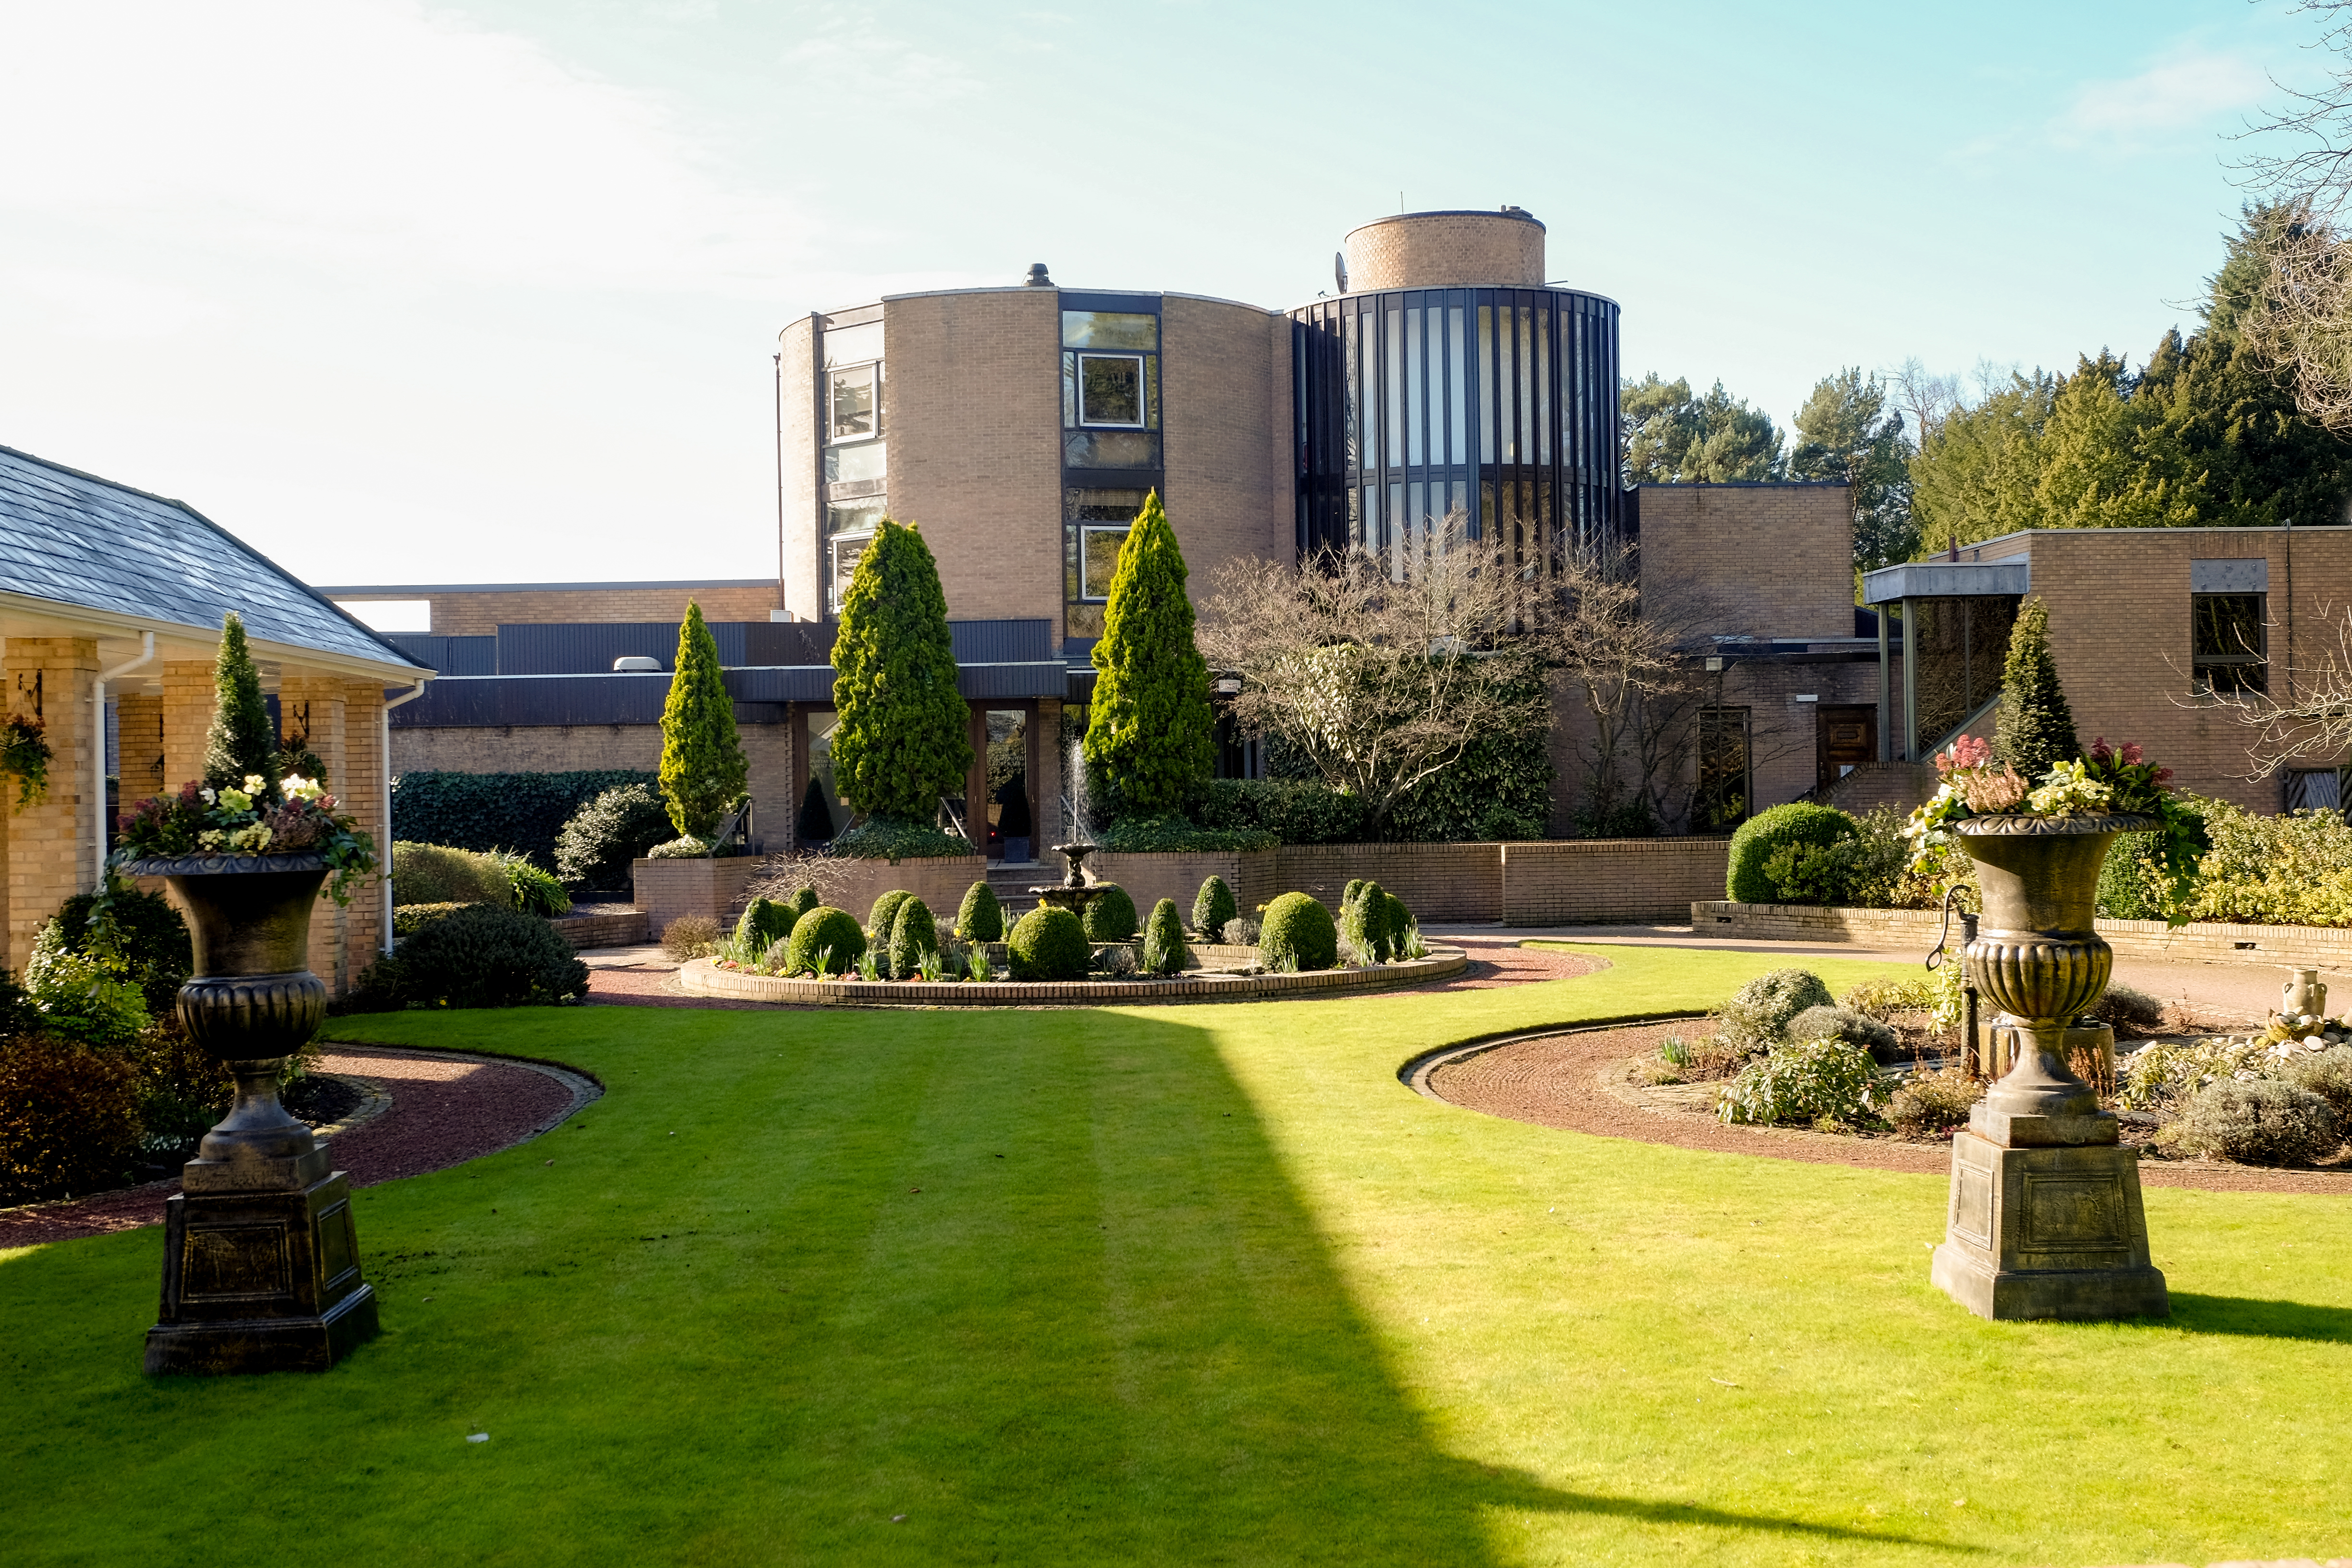 Hotels in Cheshire | Macdonald Portal Hotel, Golf & Spa